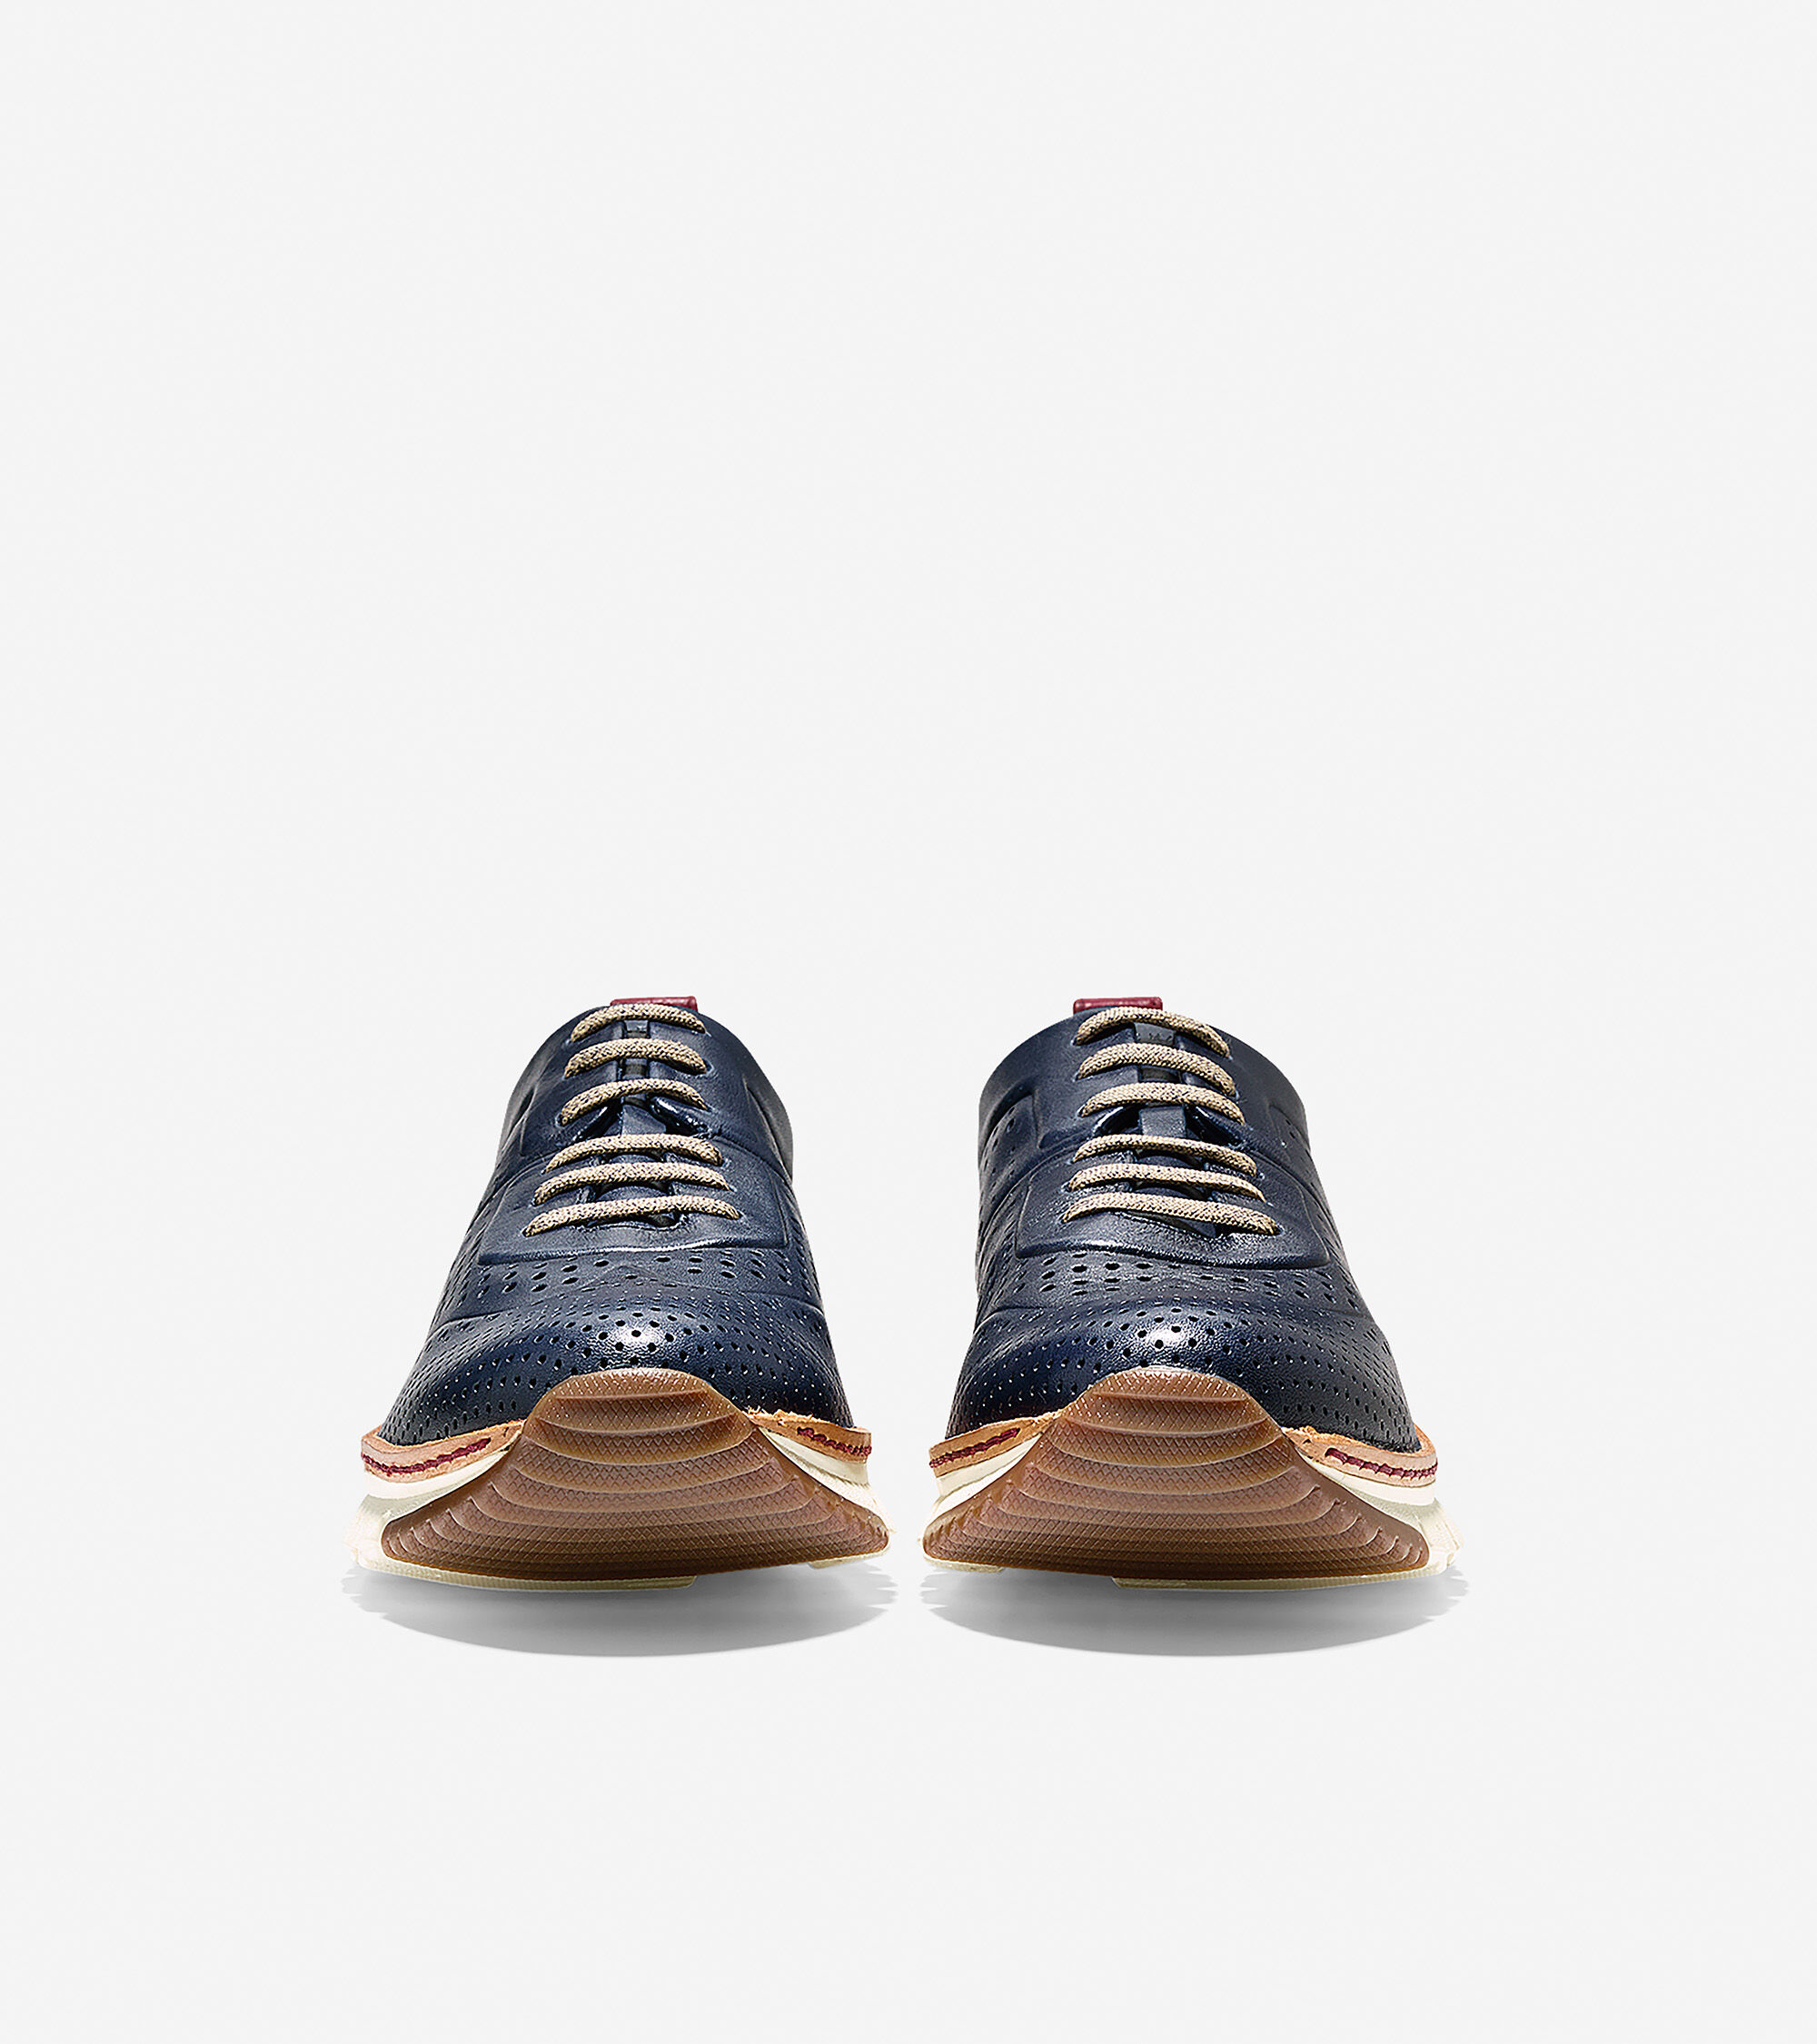 Perforated Sneaker in Marine Blue